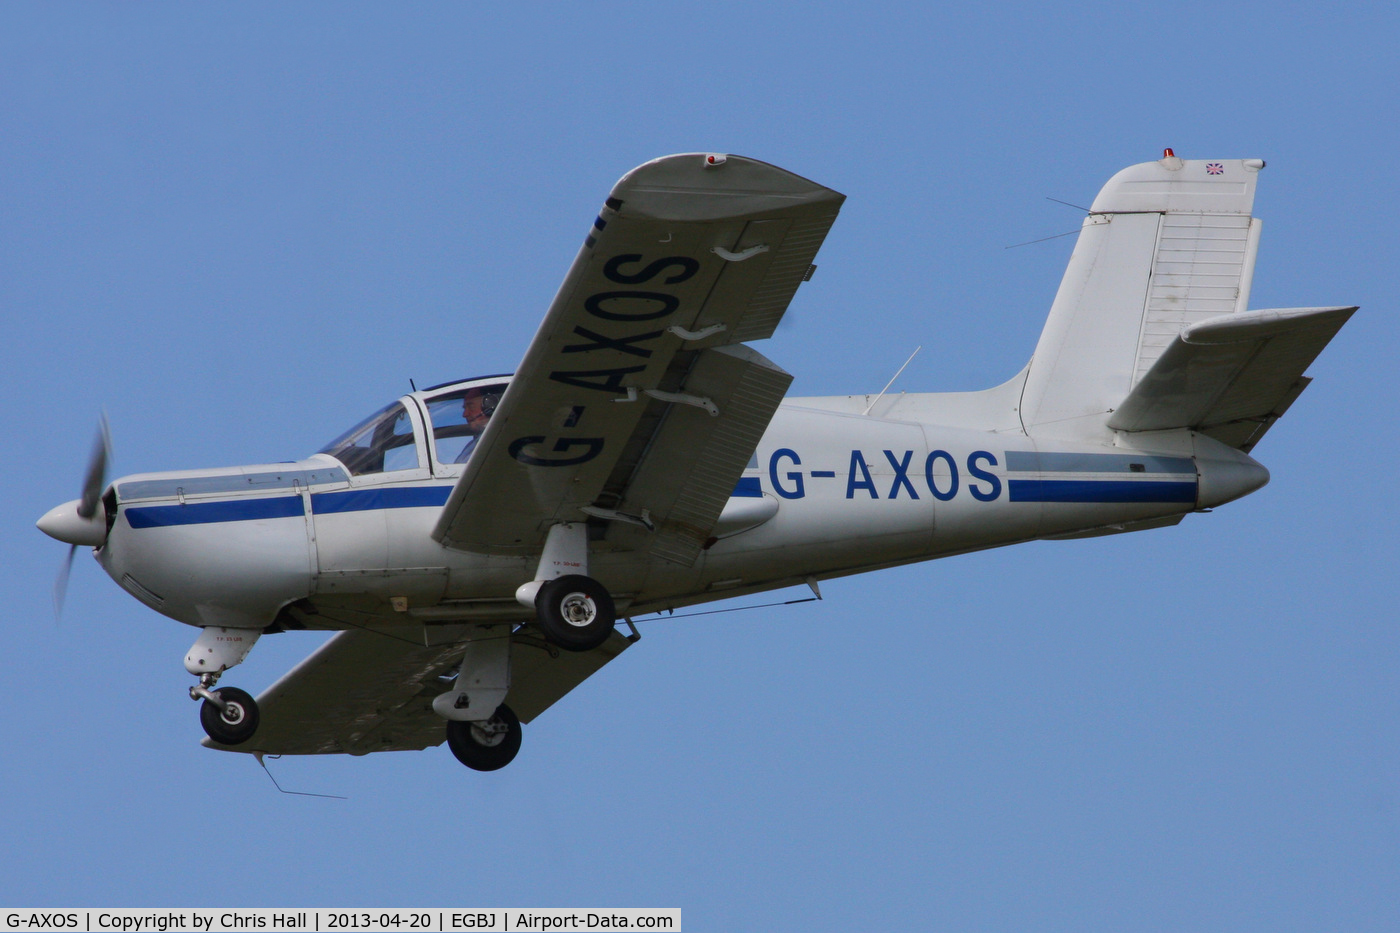 G-AXOS, 1970 Socata MS-894A Rallye Minerva C/N 11079, privately owned